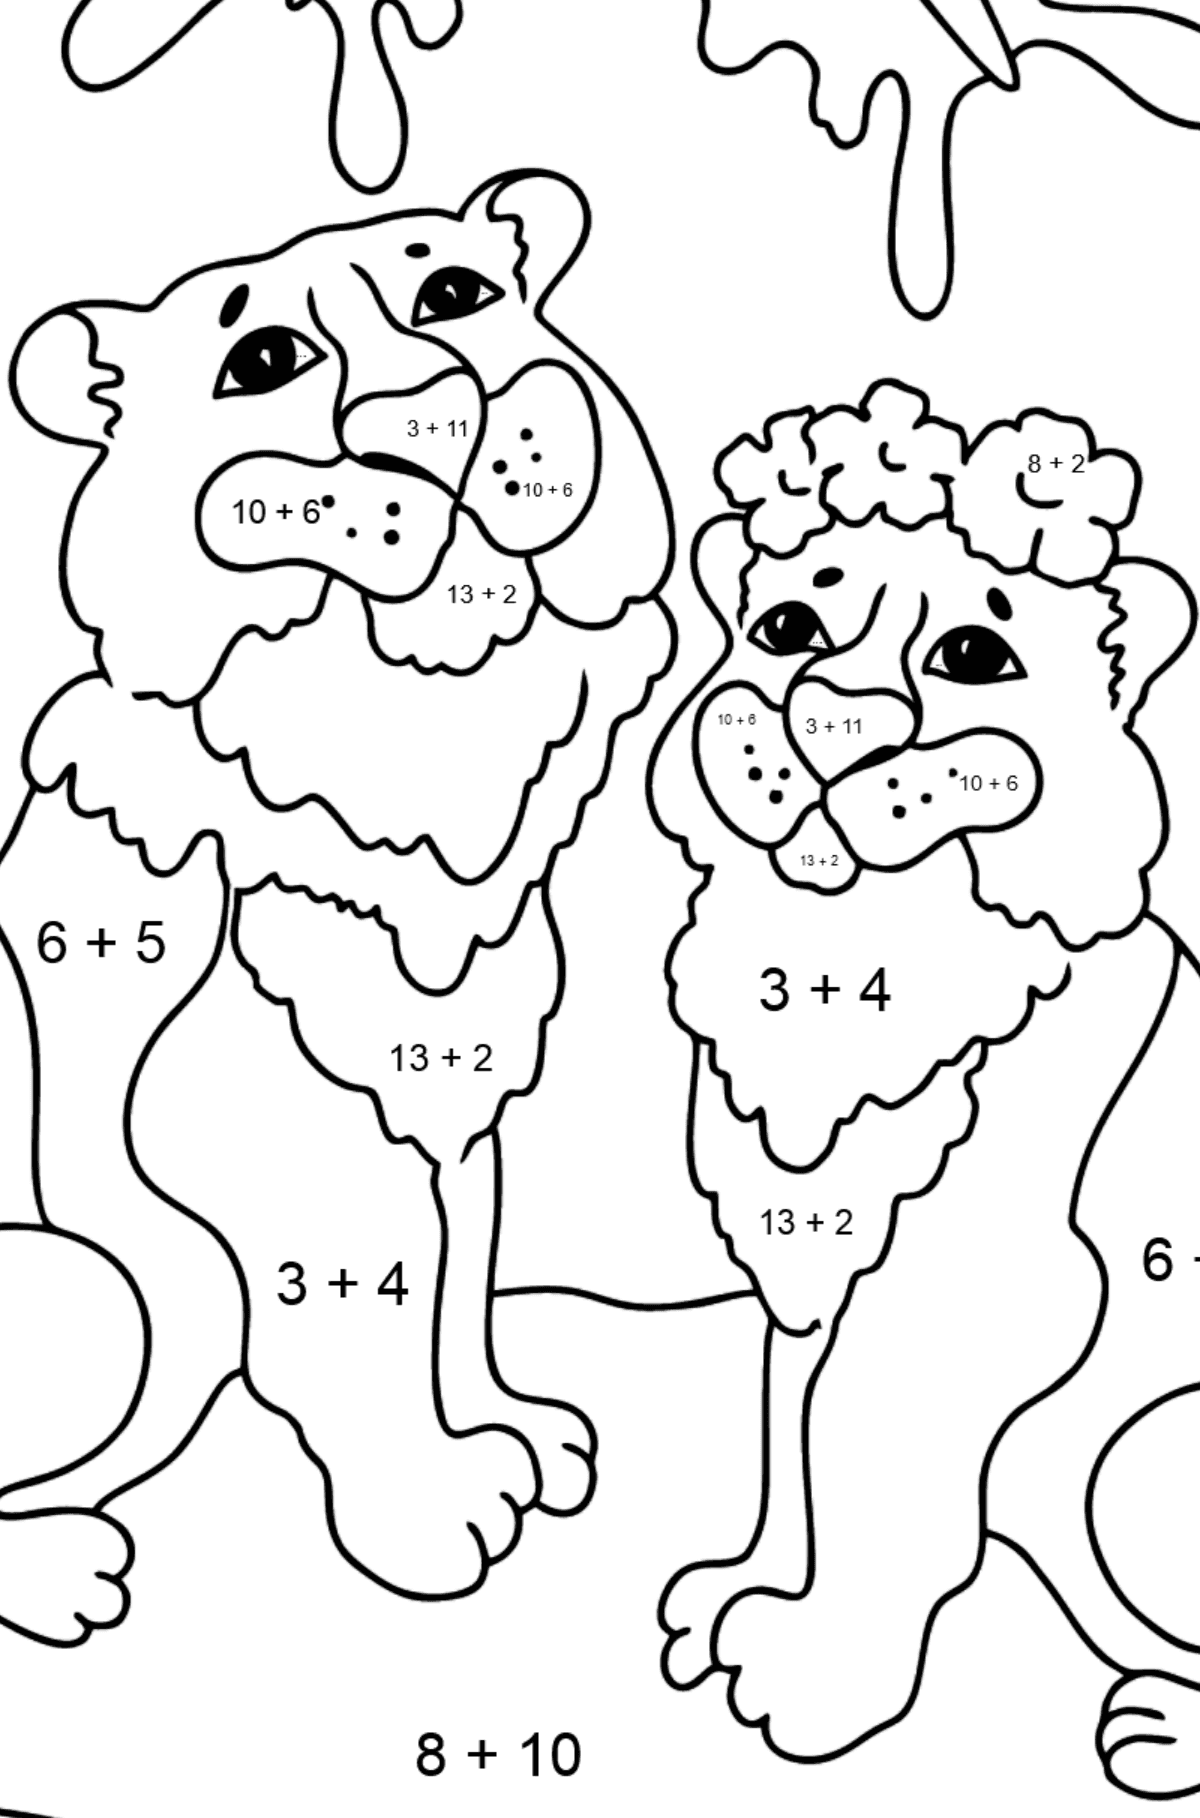 Coloring Page - Tigers with Butterflies - Math Coloring - Addition for Kids